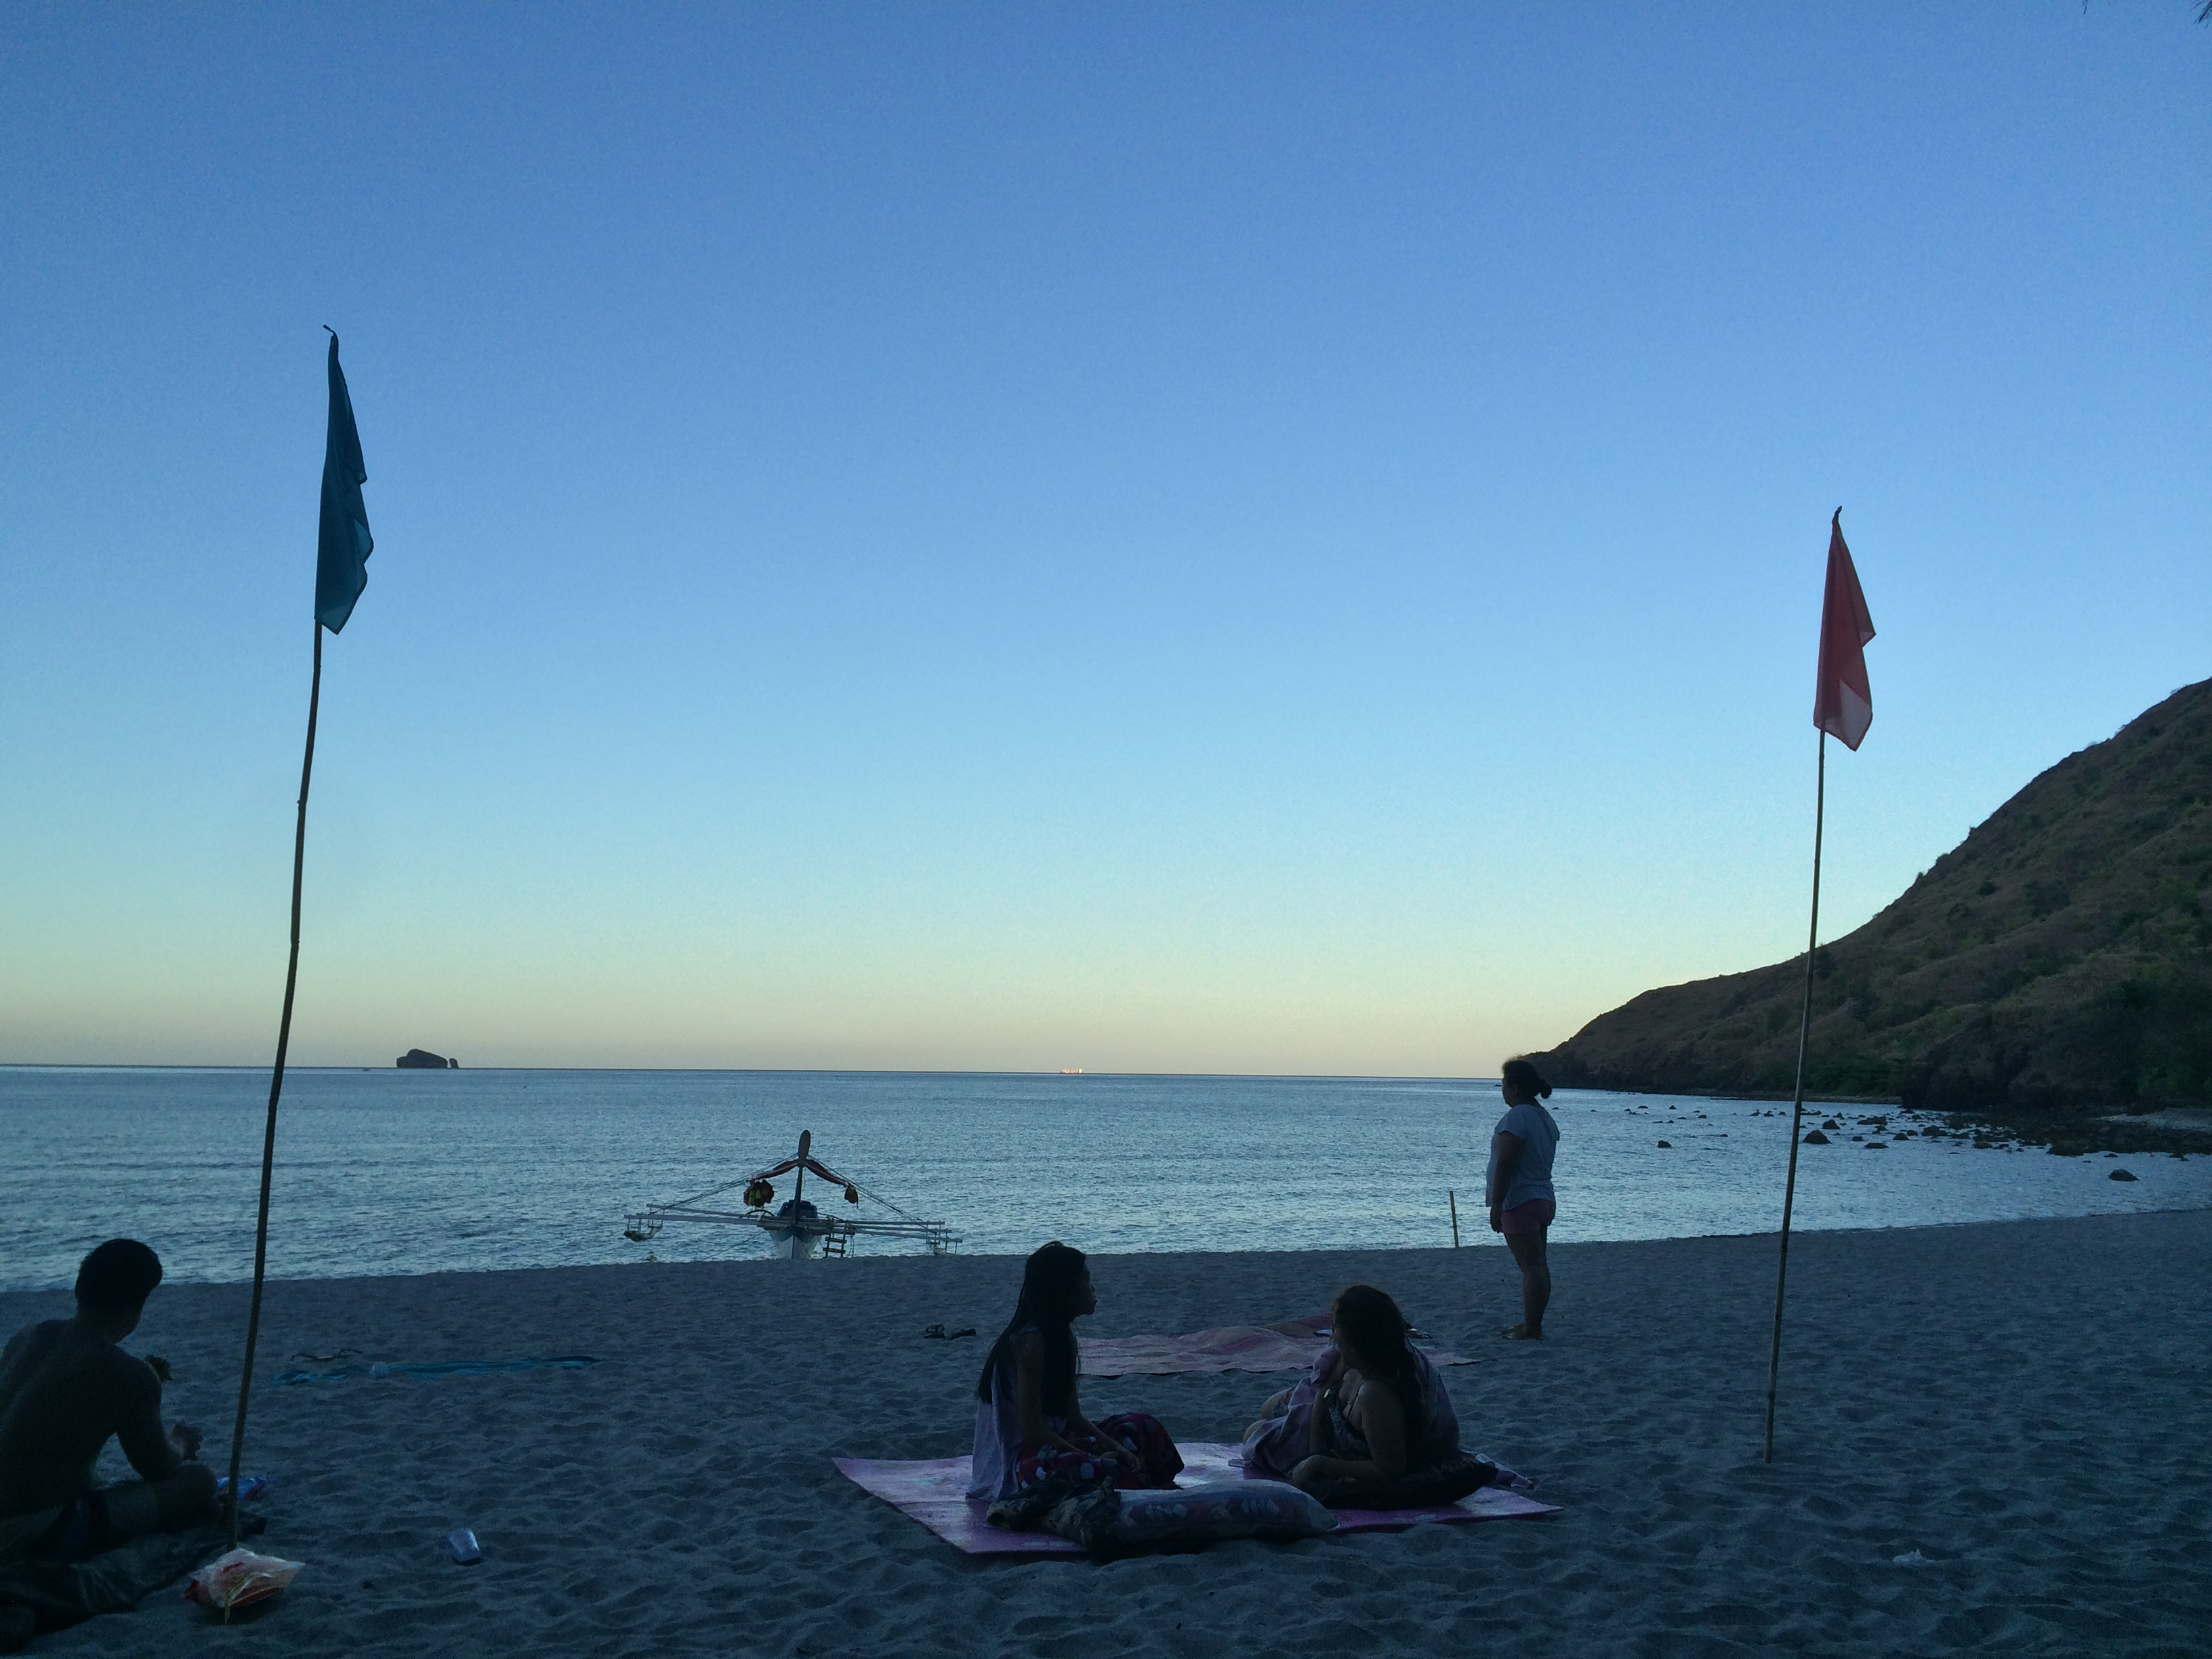 Dawn at Talisayen Cove, Zambales